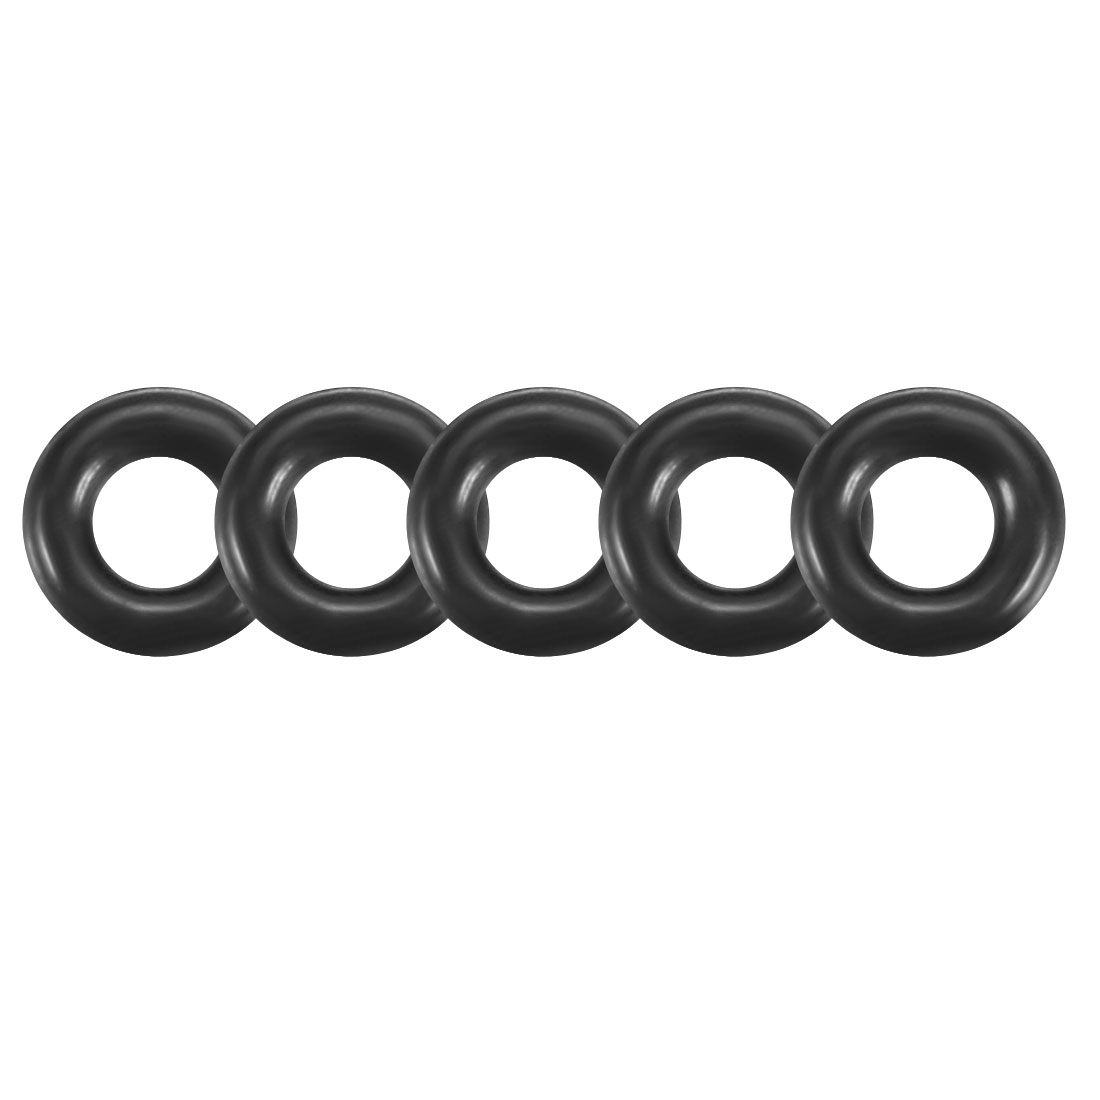 100Pcs Black 3mm x 0.8mm Nitrile Rubber O Ring NBR Oil Sealing Grommets